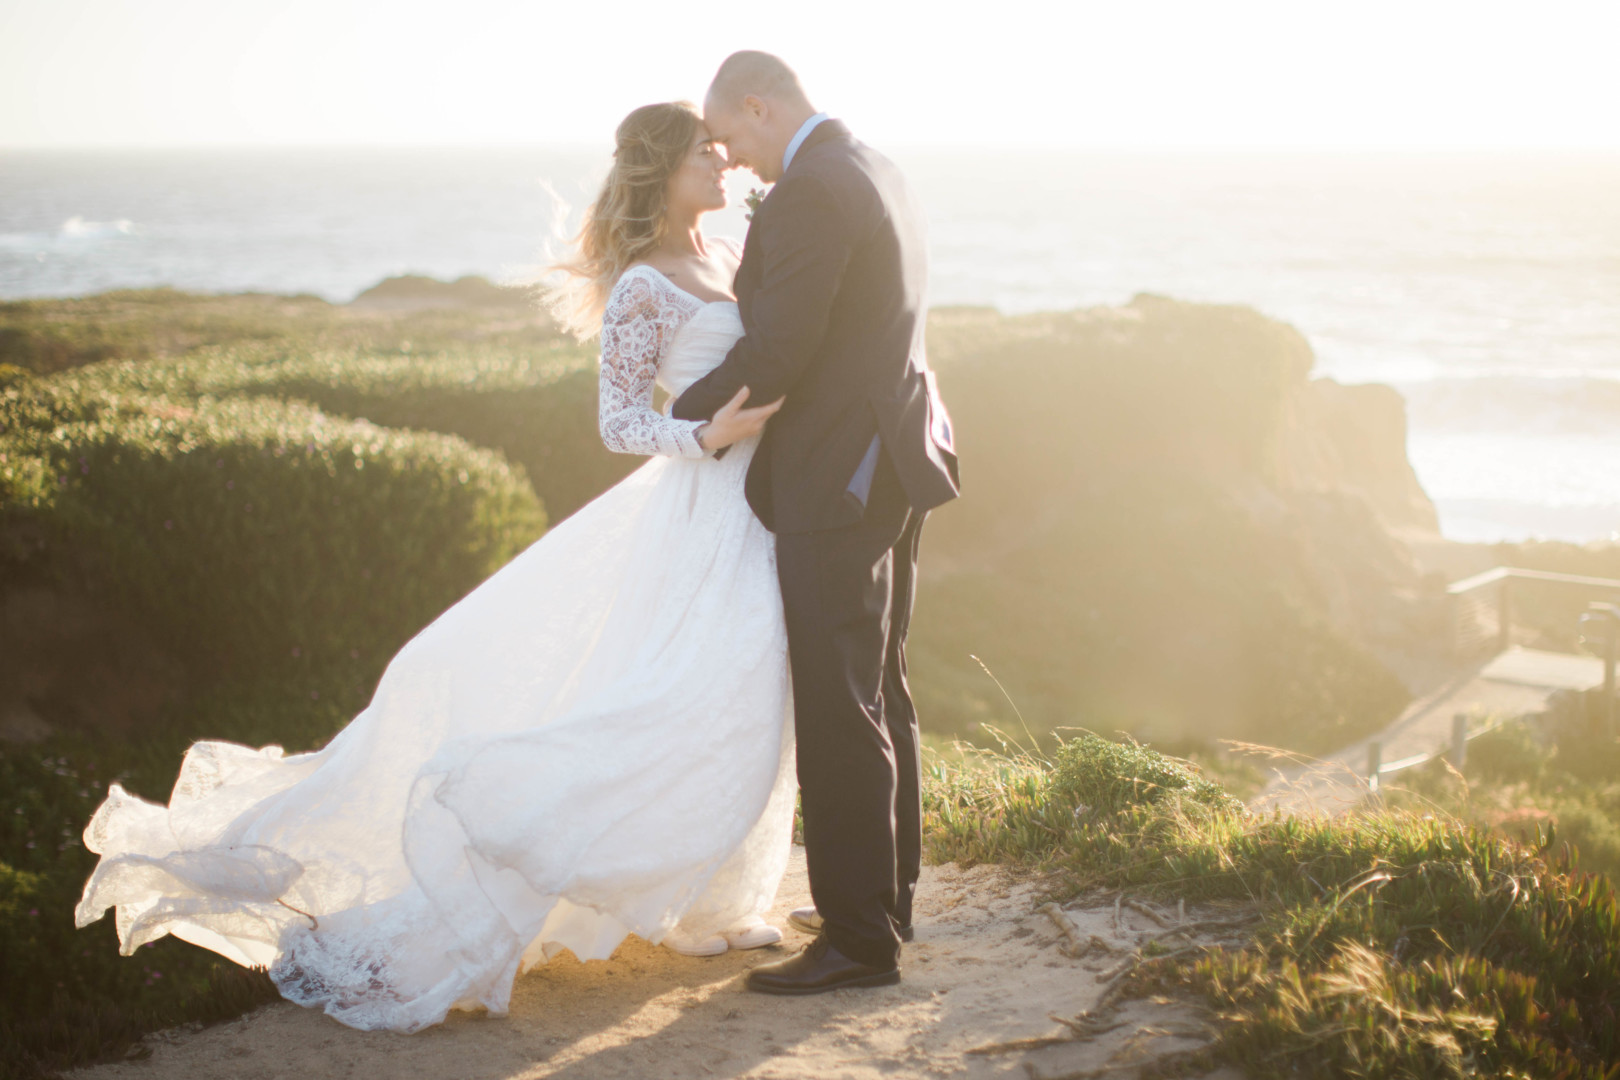 Alina + Joel | Intimate Glen Oaks Big Sur Elopement